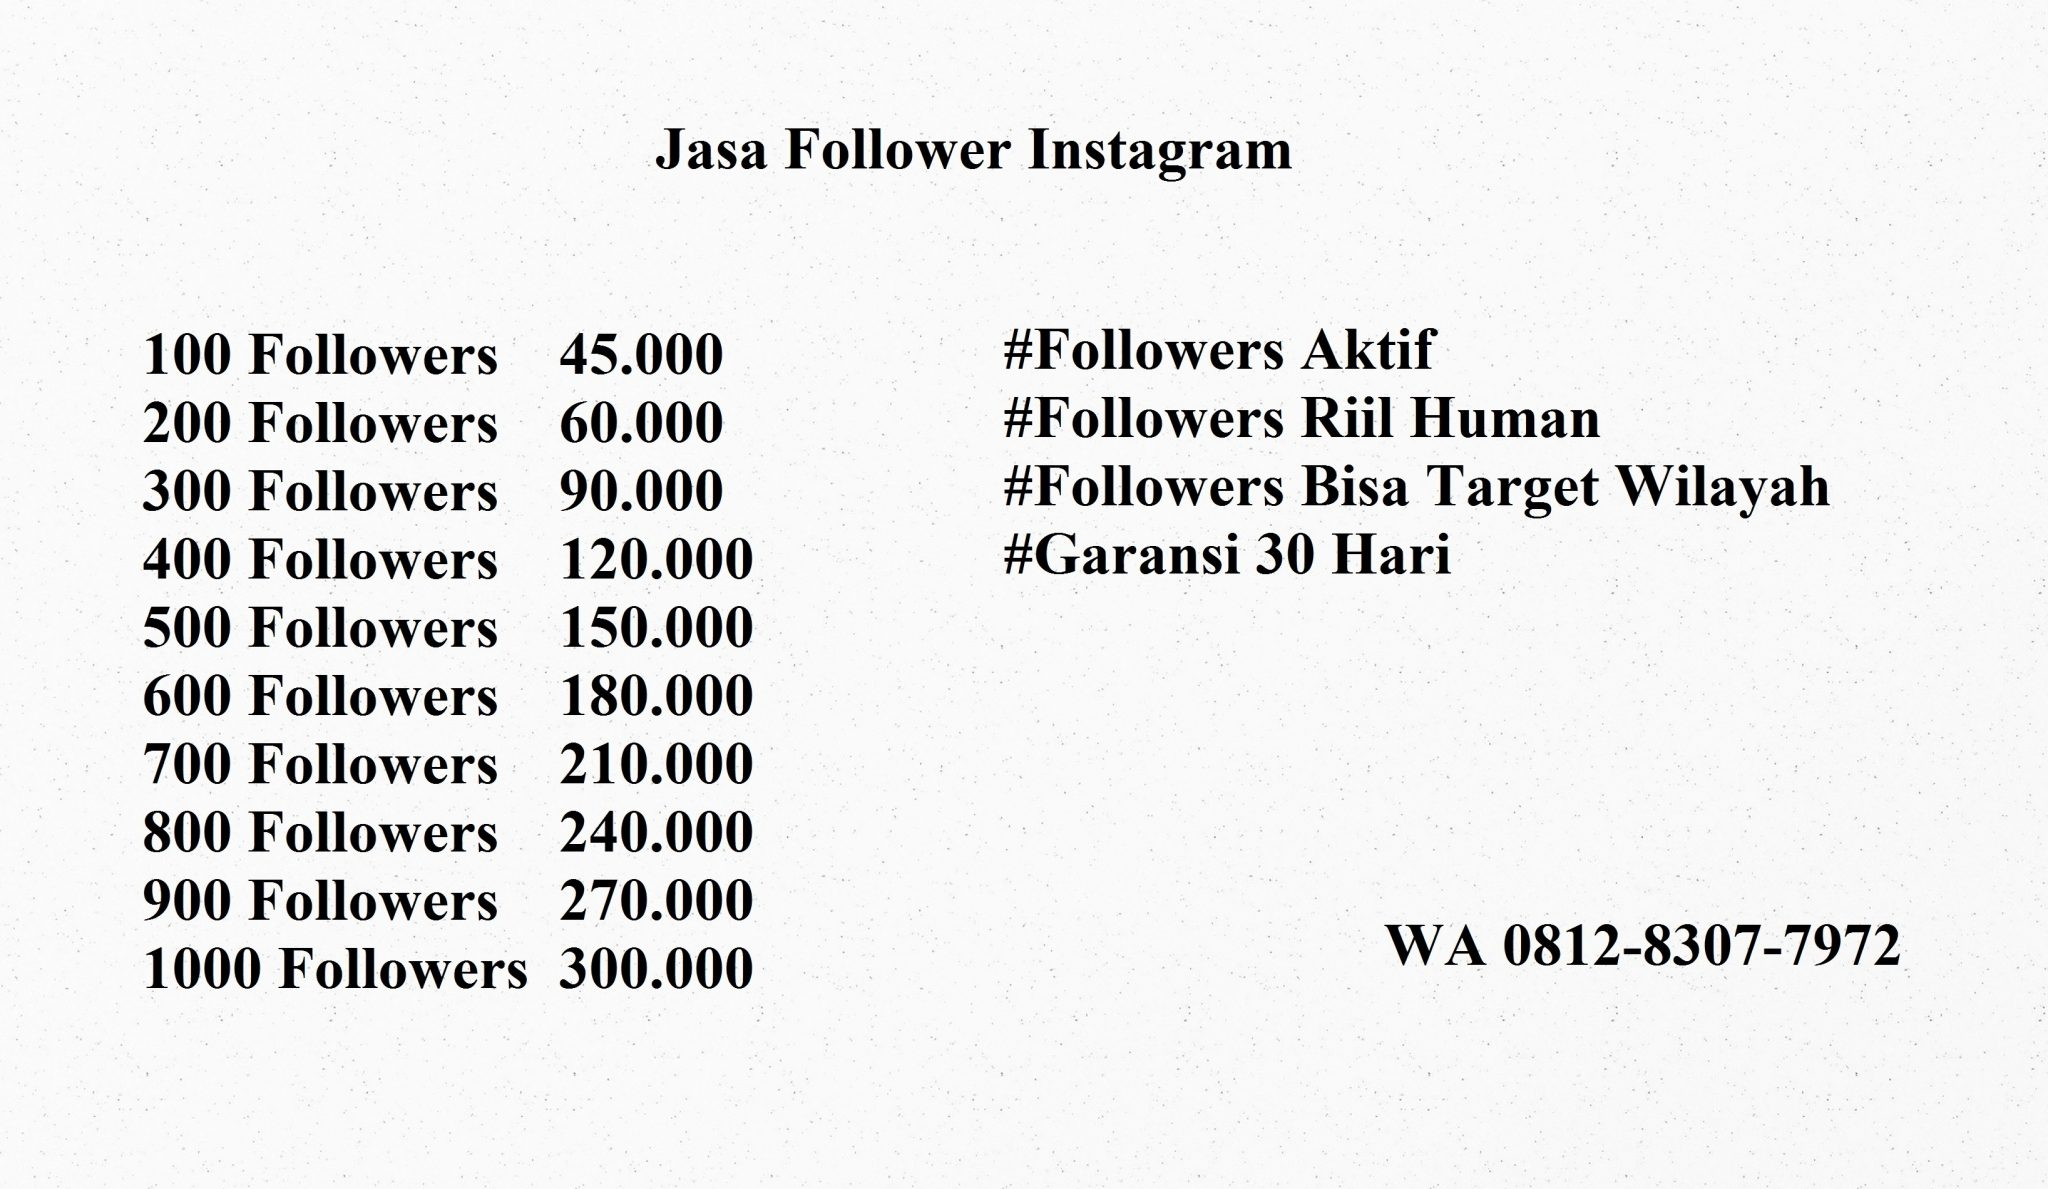 Jasa Follower Instagram Jogja Indonesia Aktif Tertarget